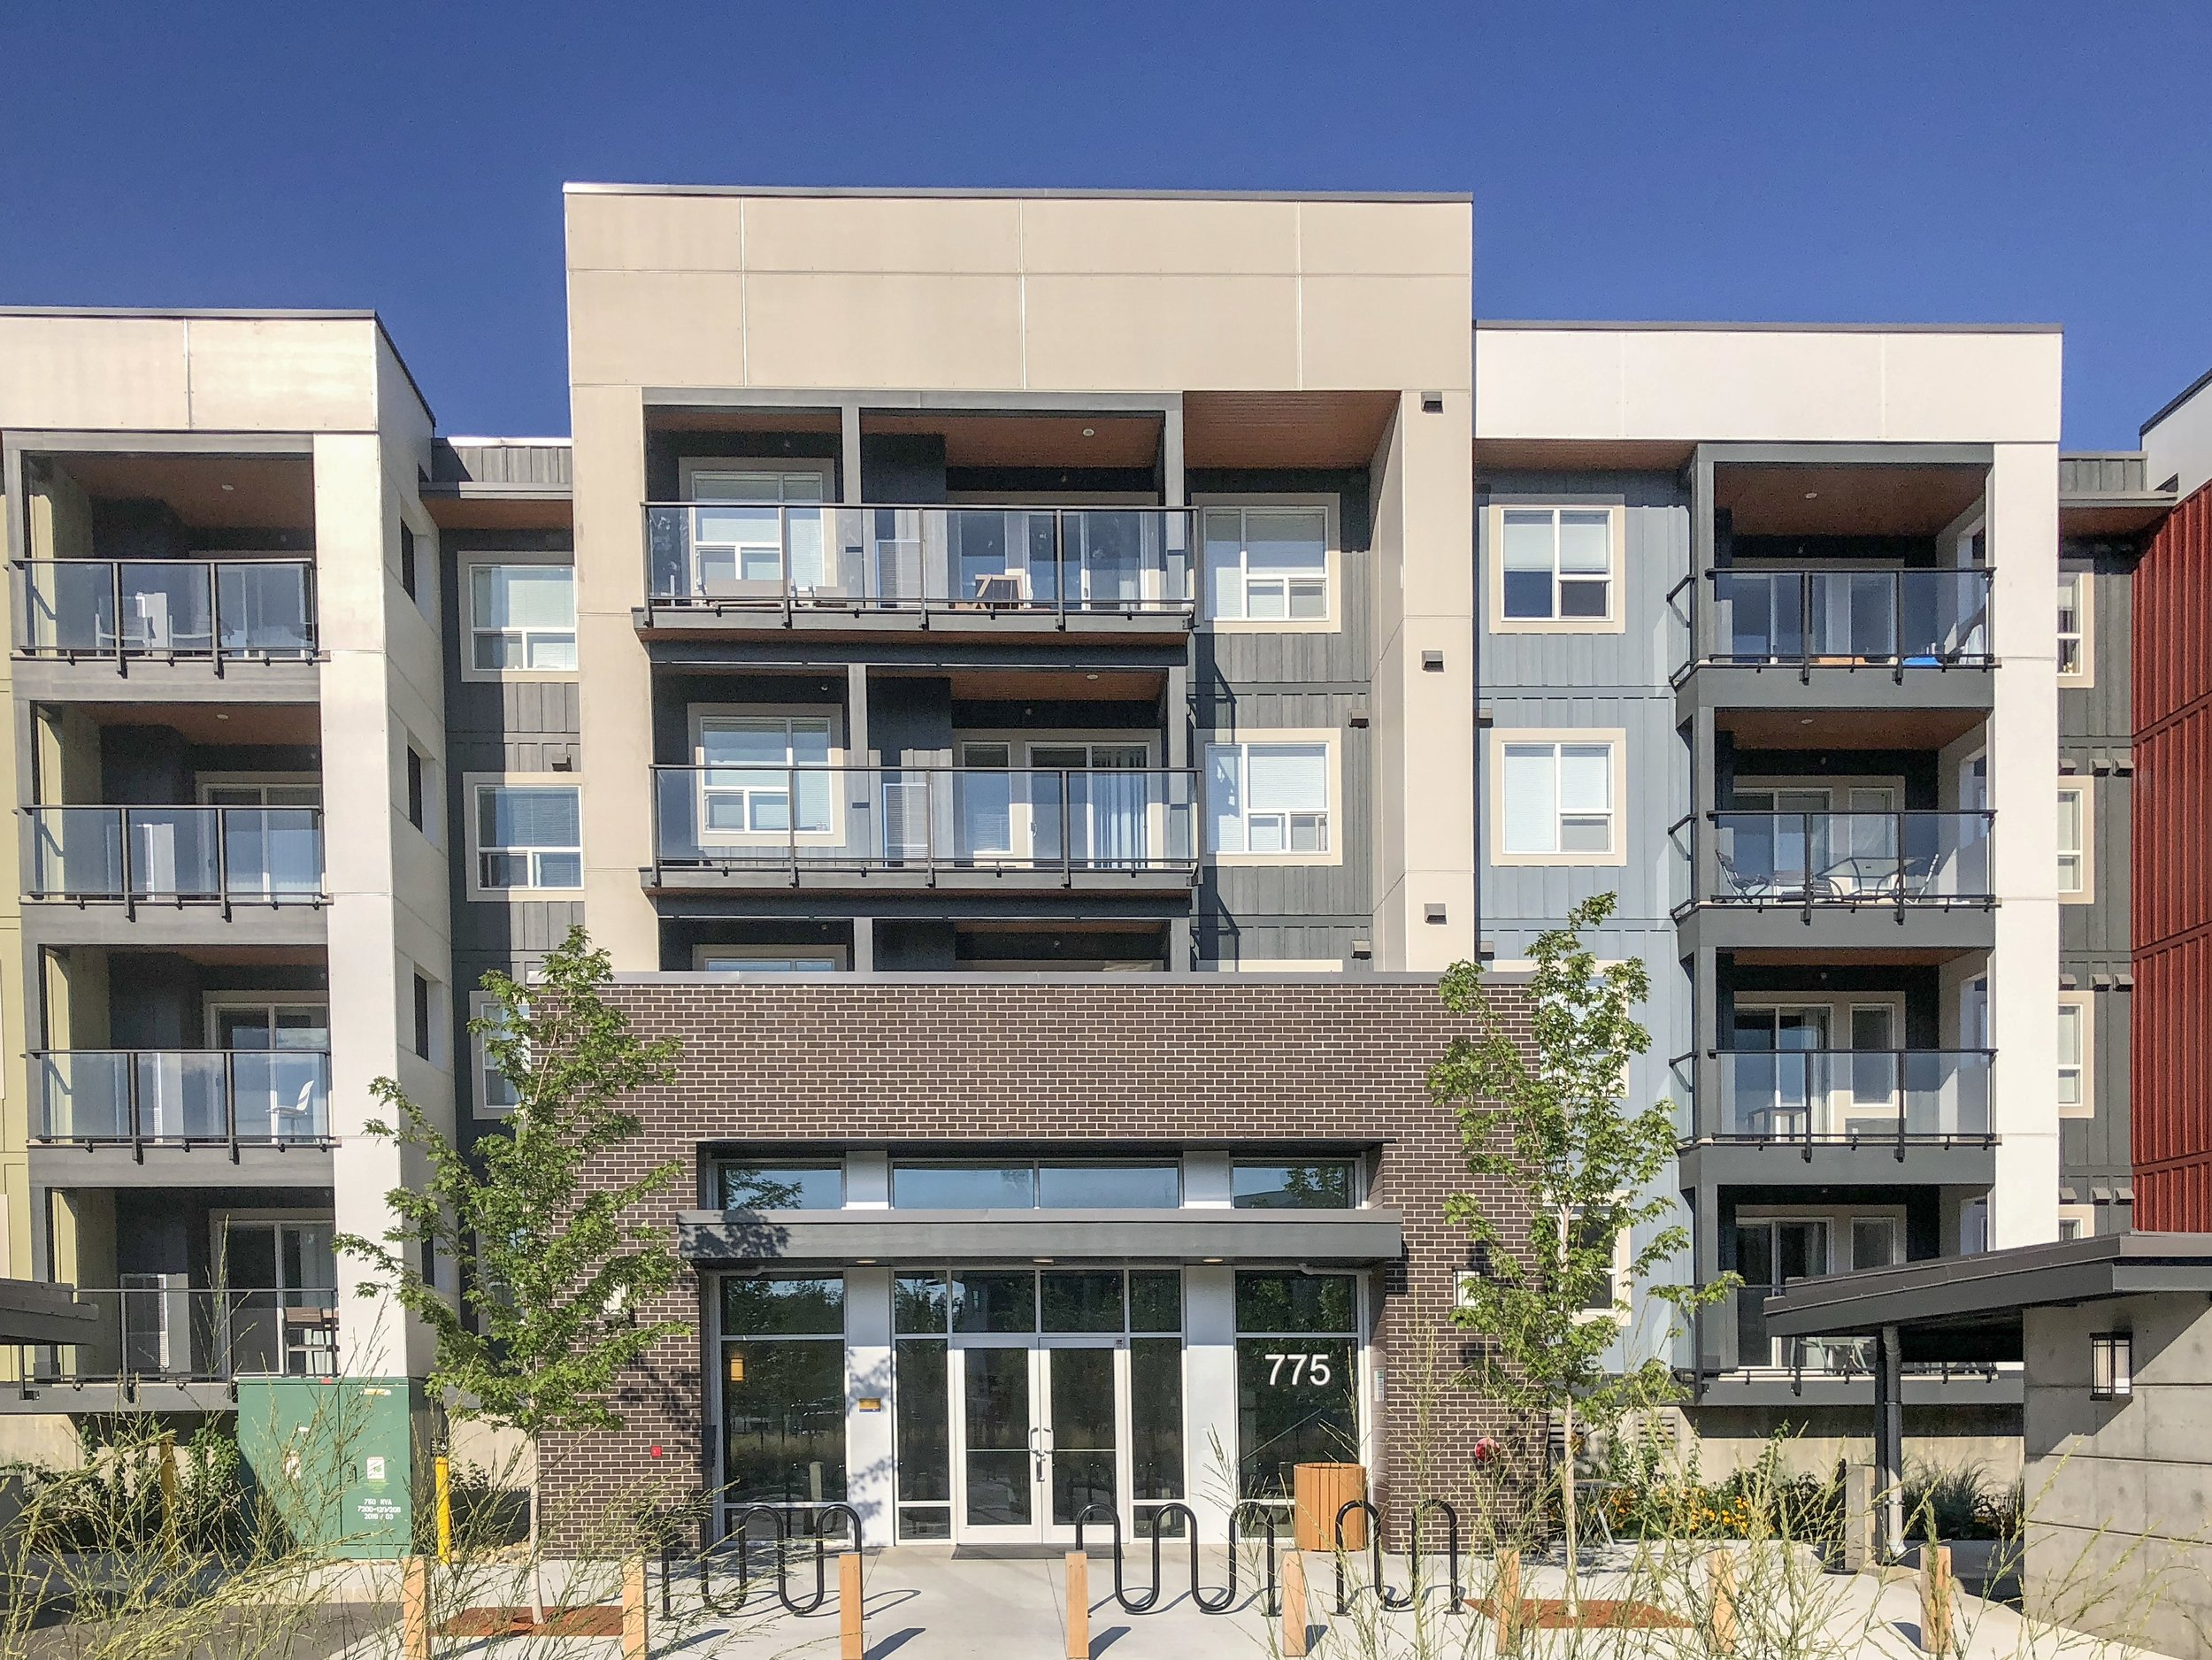 u-three-ubco-01-kelowna-investment-property.jpg